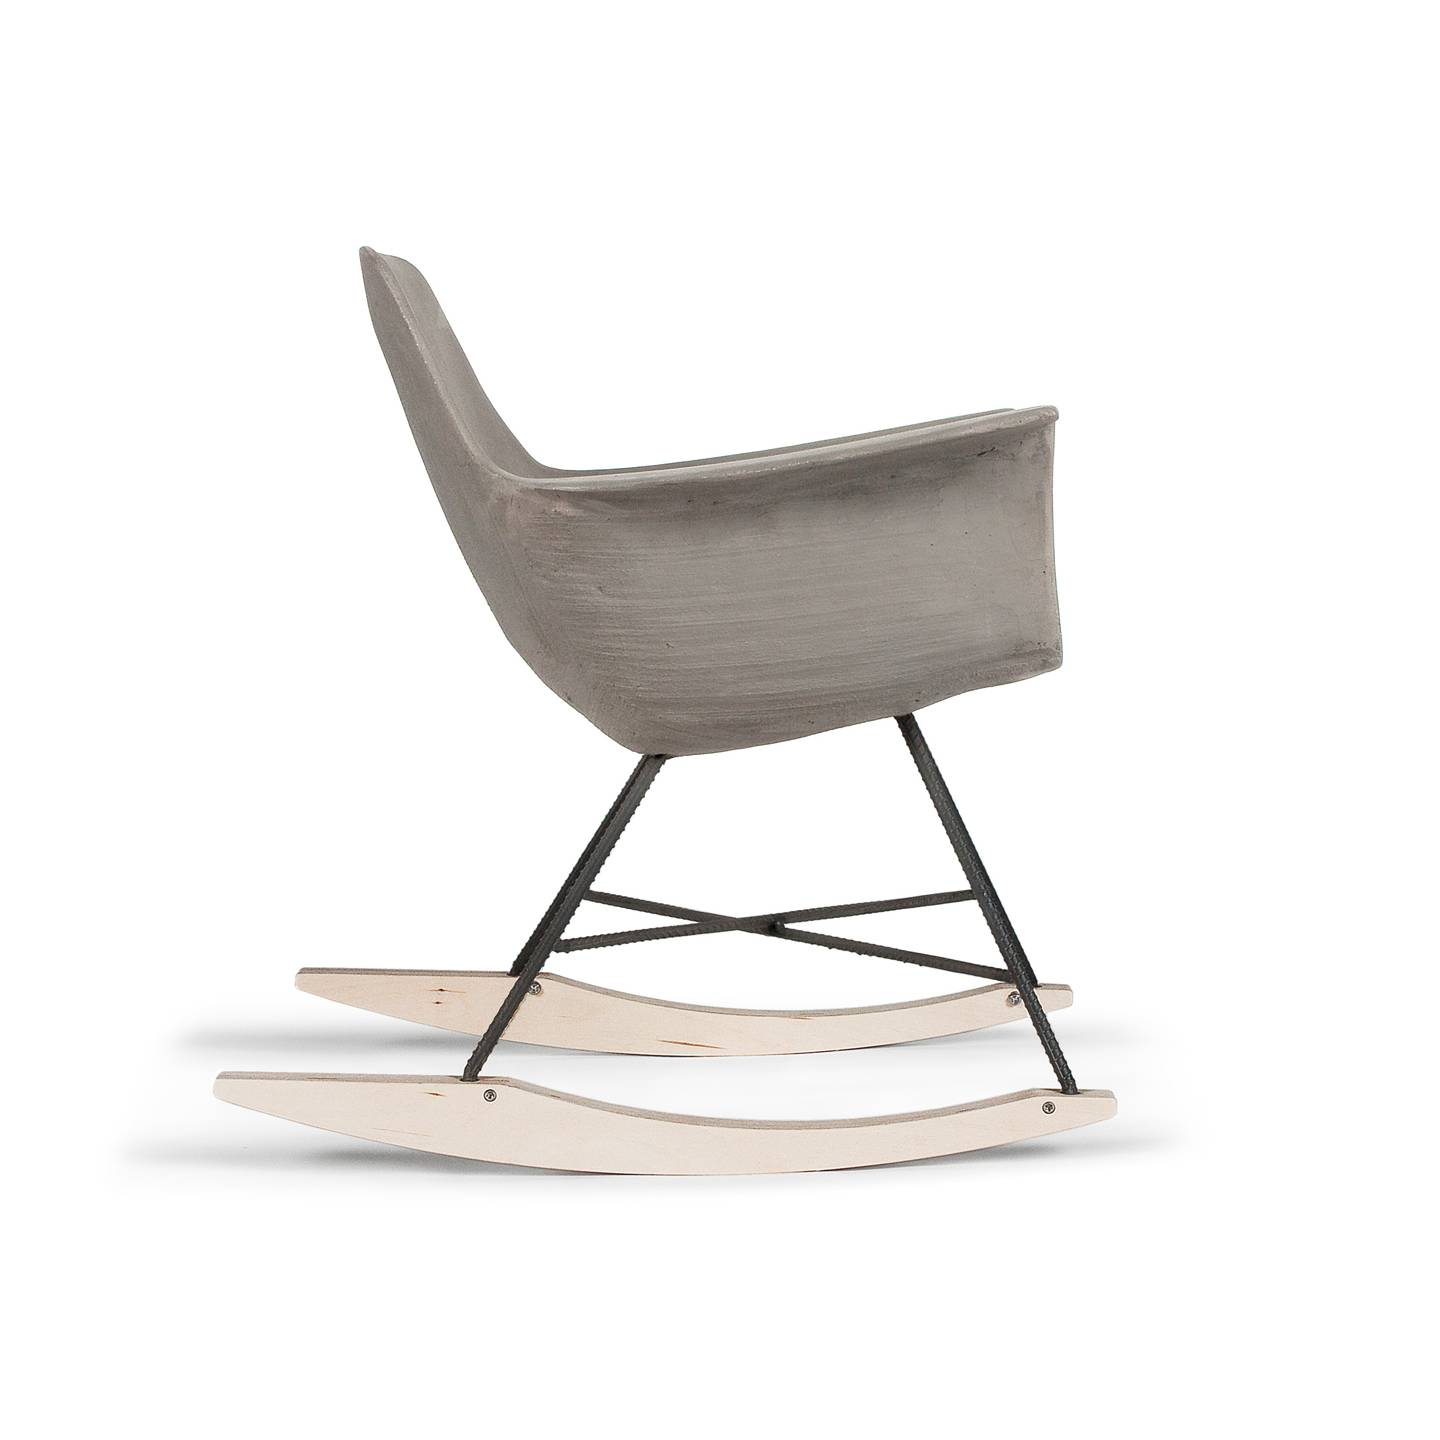 hauteville-concrete-rocking-chair-design-lyon-beton-01